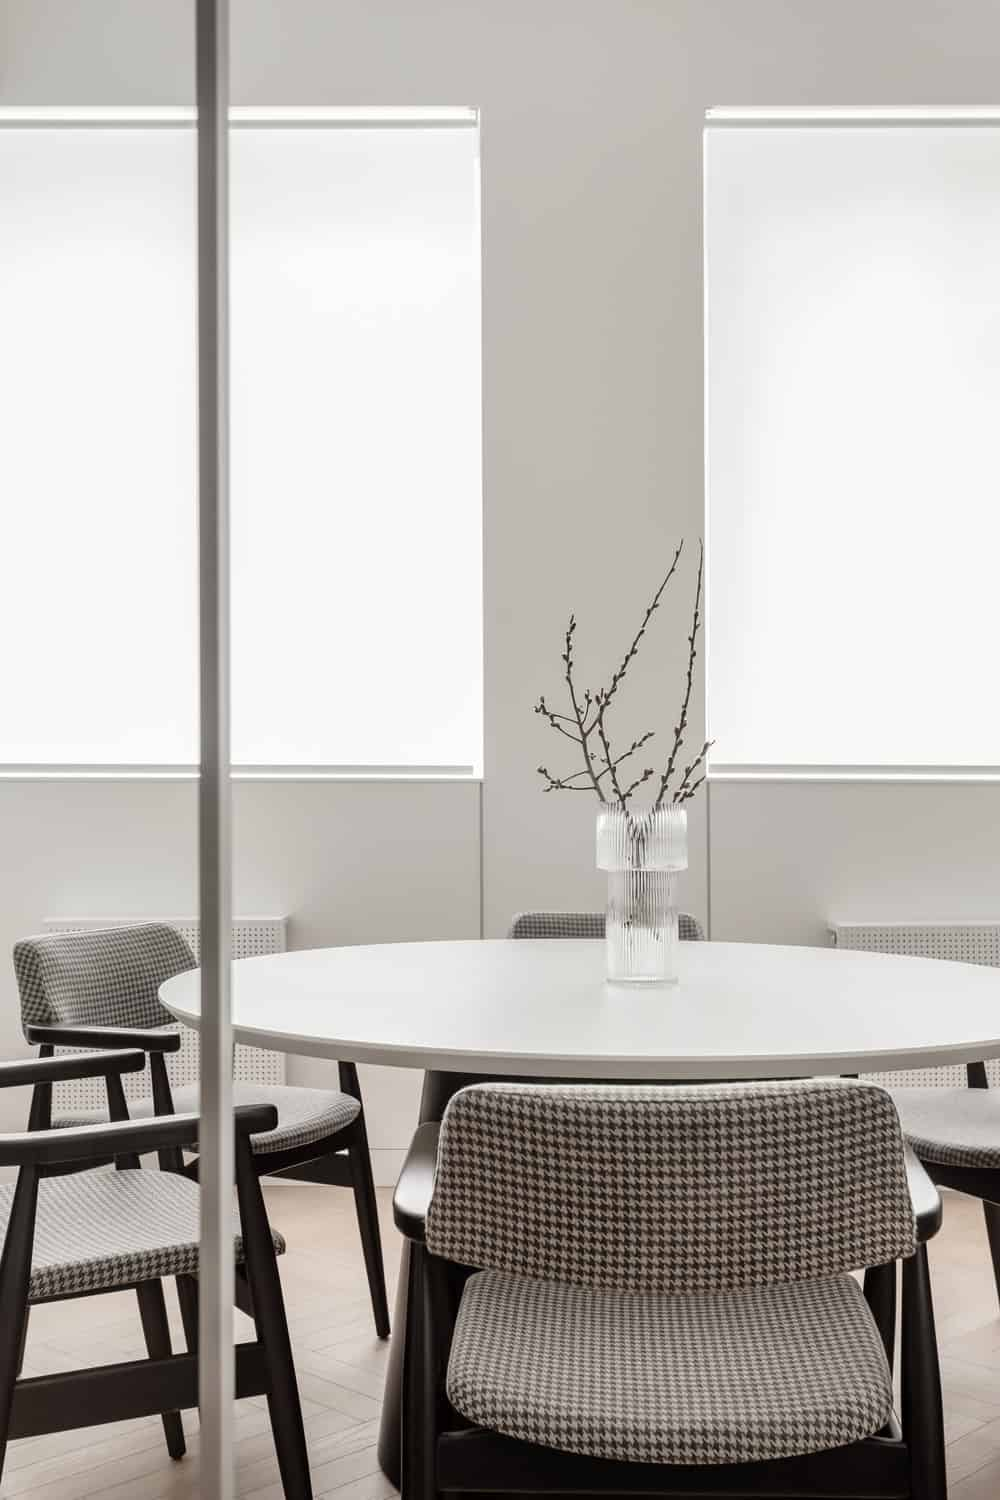 The bright tone of the round table is complemented by the two large windows on the far side of the room.